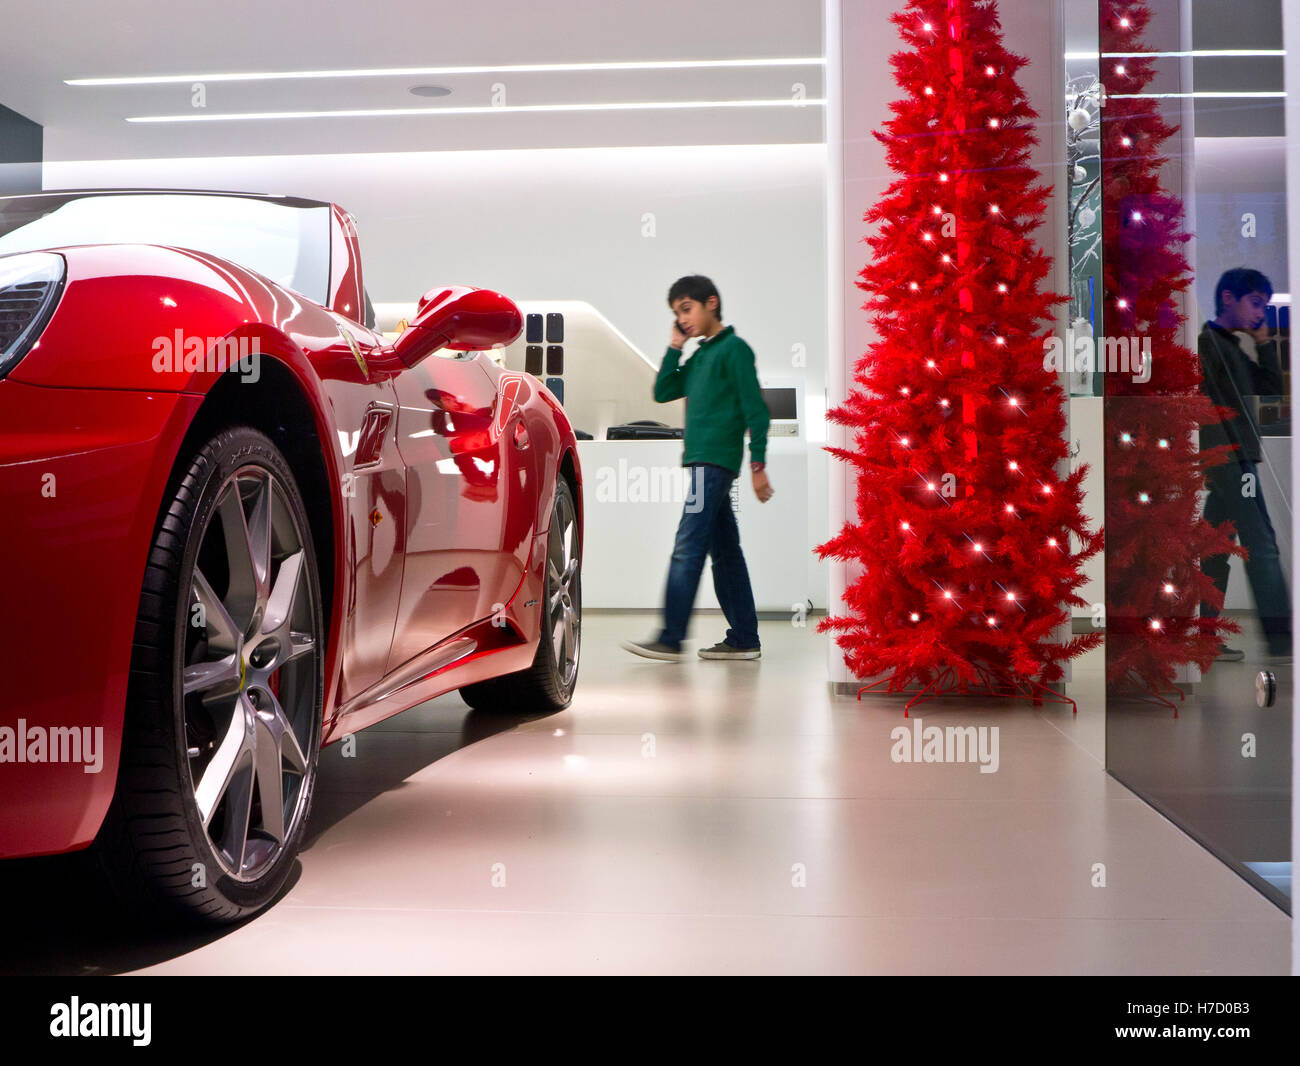 Christmas Sports Car.Red Ferrari California Sports Car On Display For Sale In